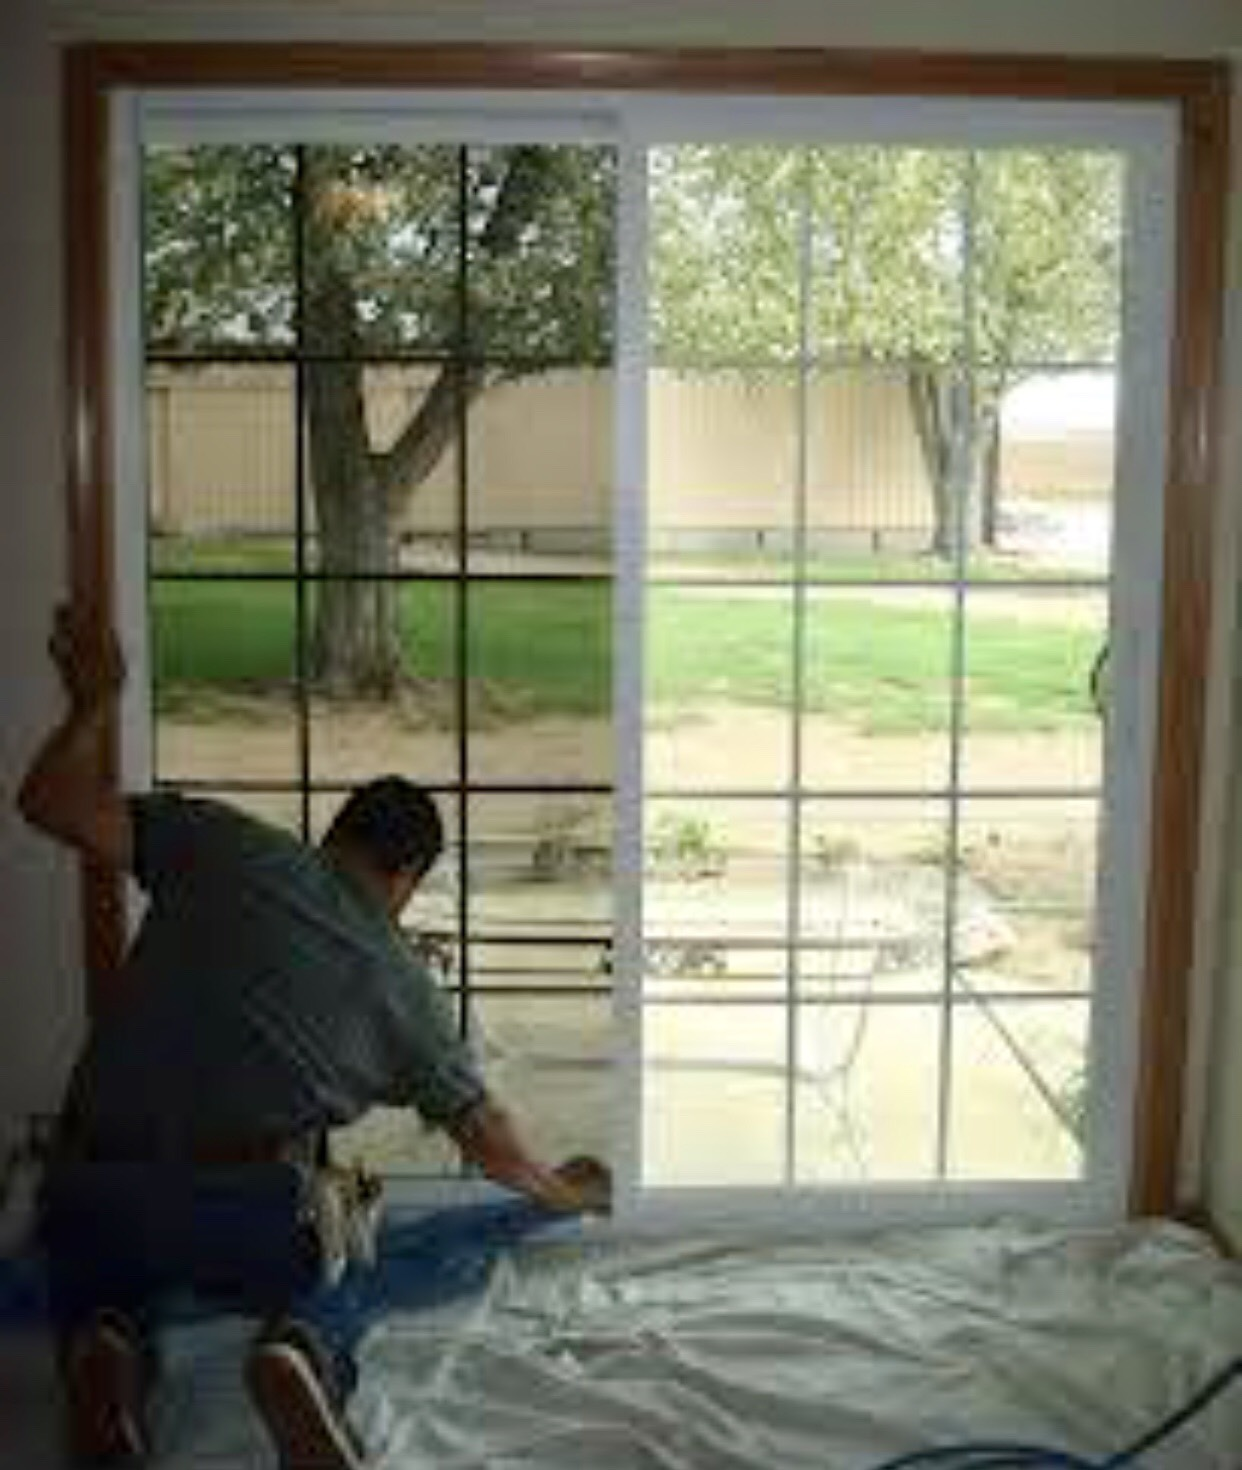 Residential window tinting security film window tinting for Windows for residential homes